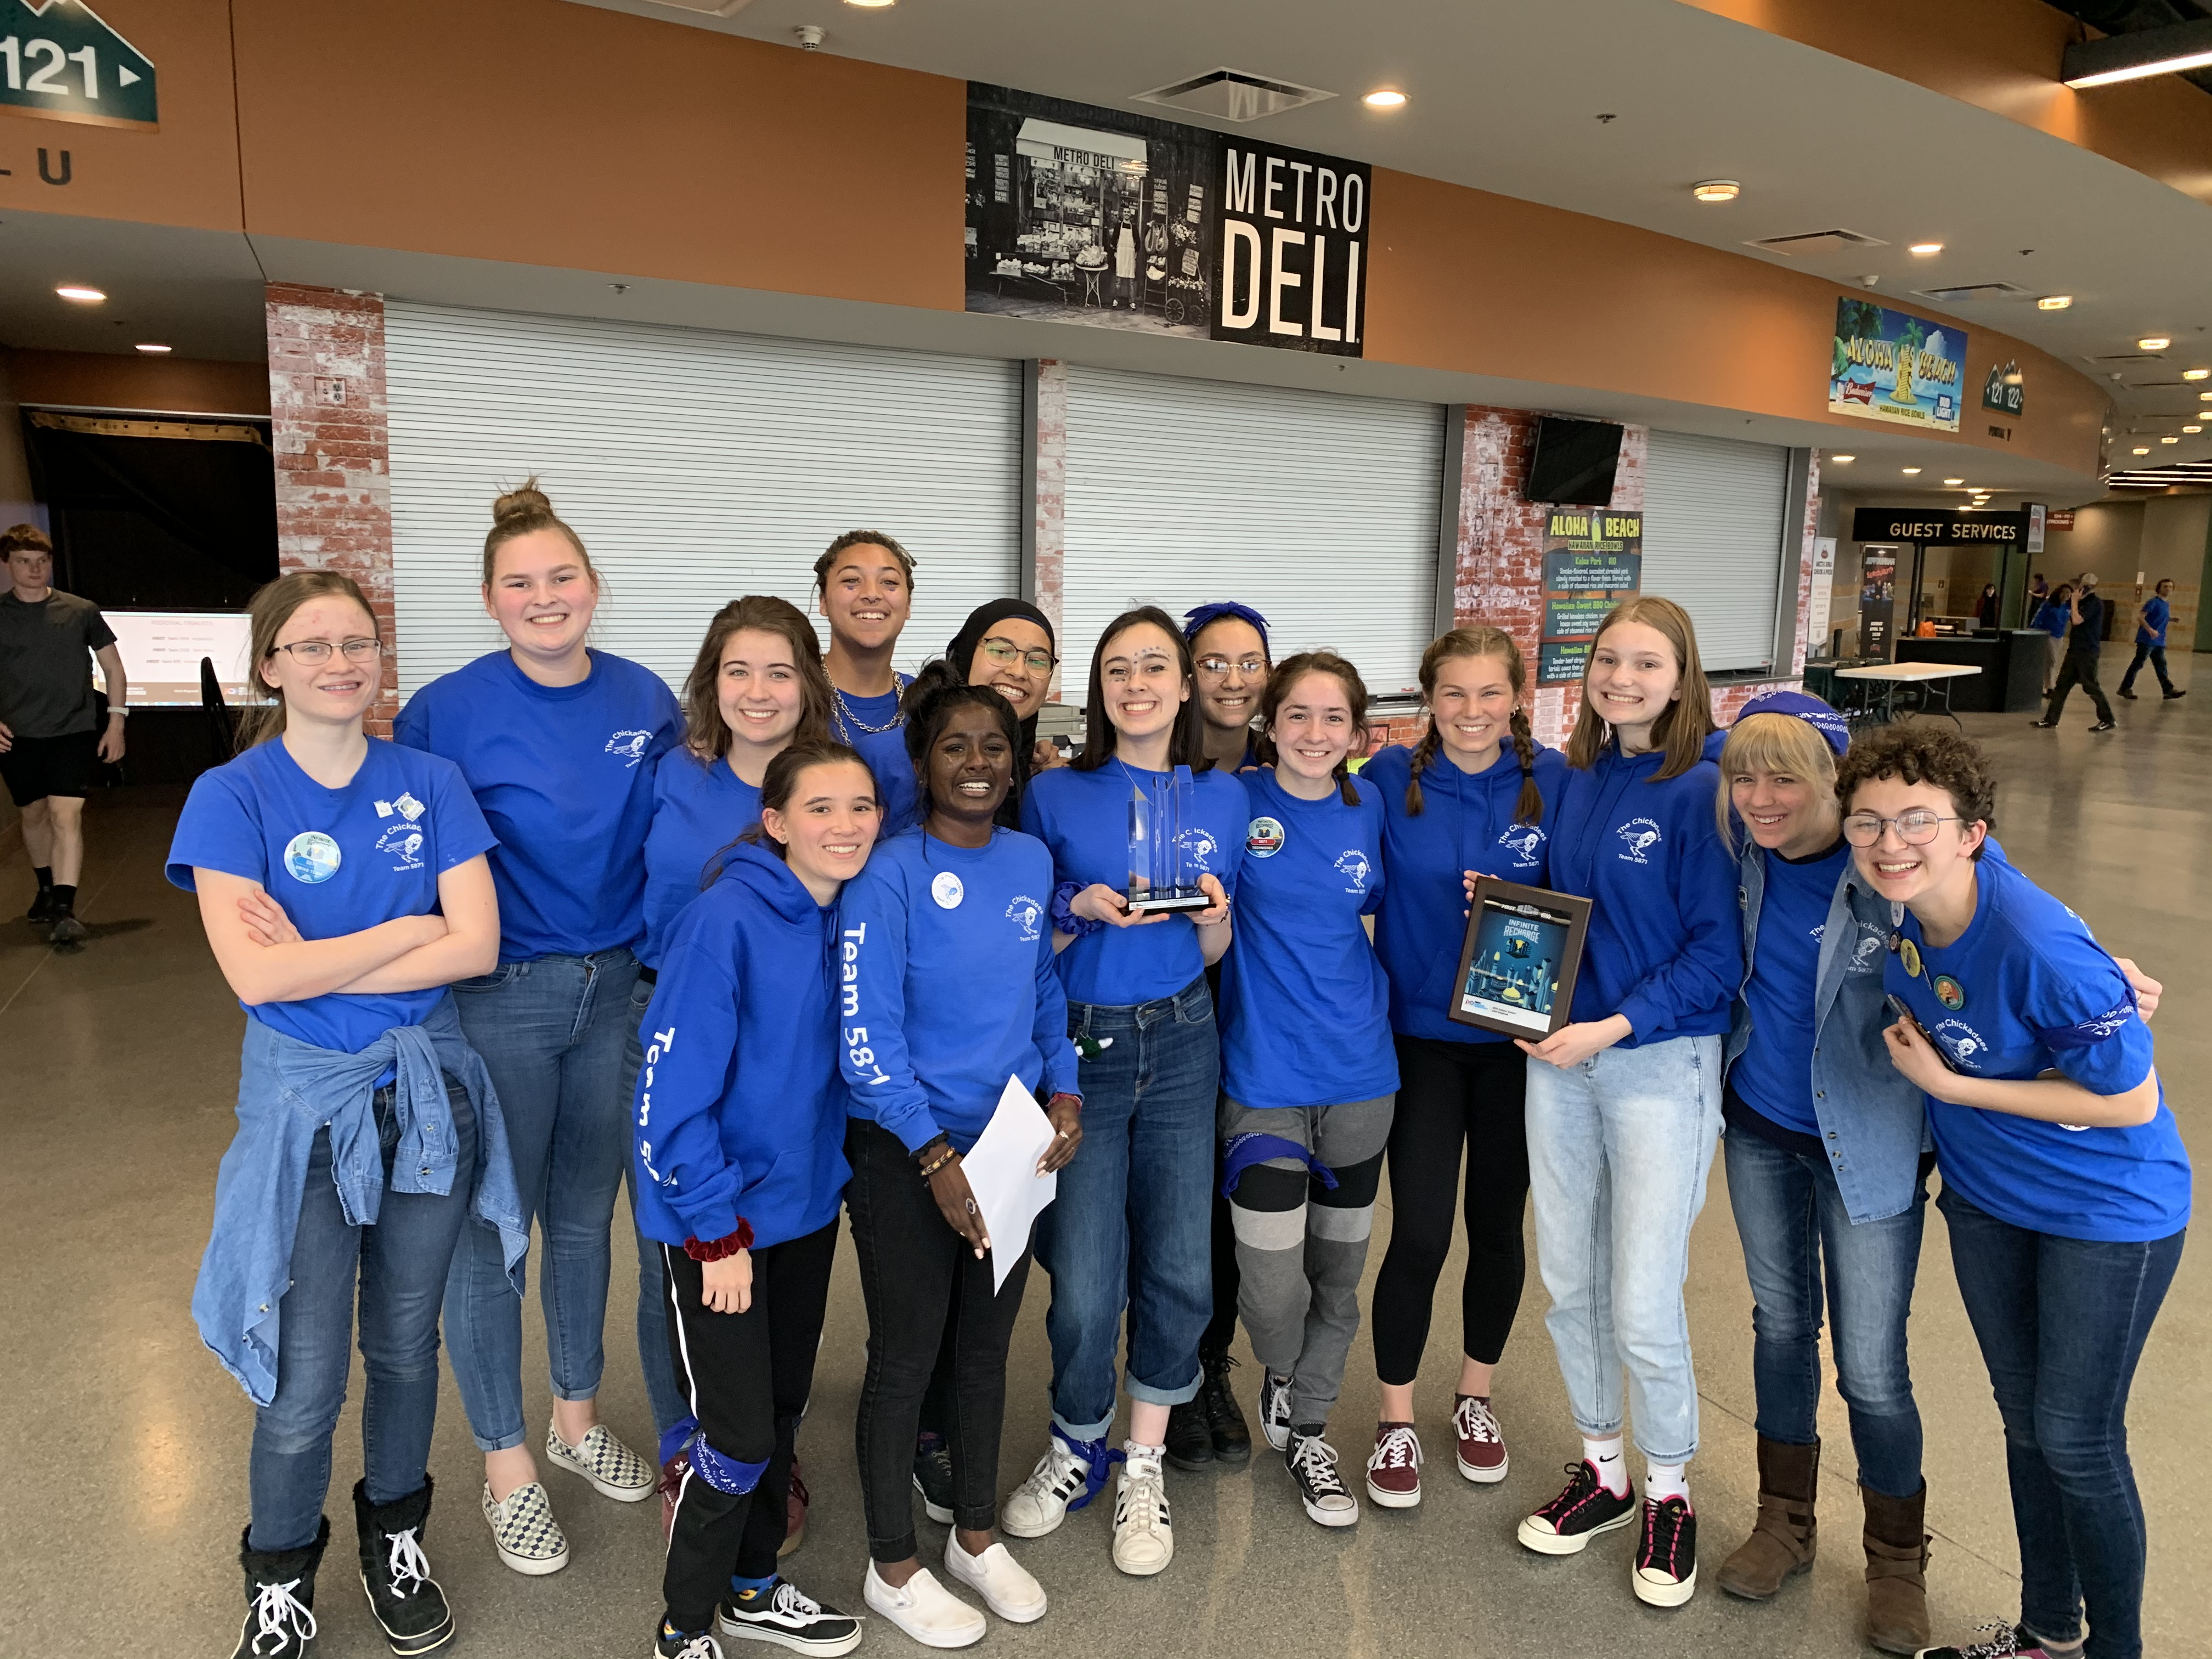 Members of the Chickadees FIRST Robotics team after winning the Judges Award at the 2020 Utah FRC Regional